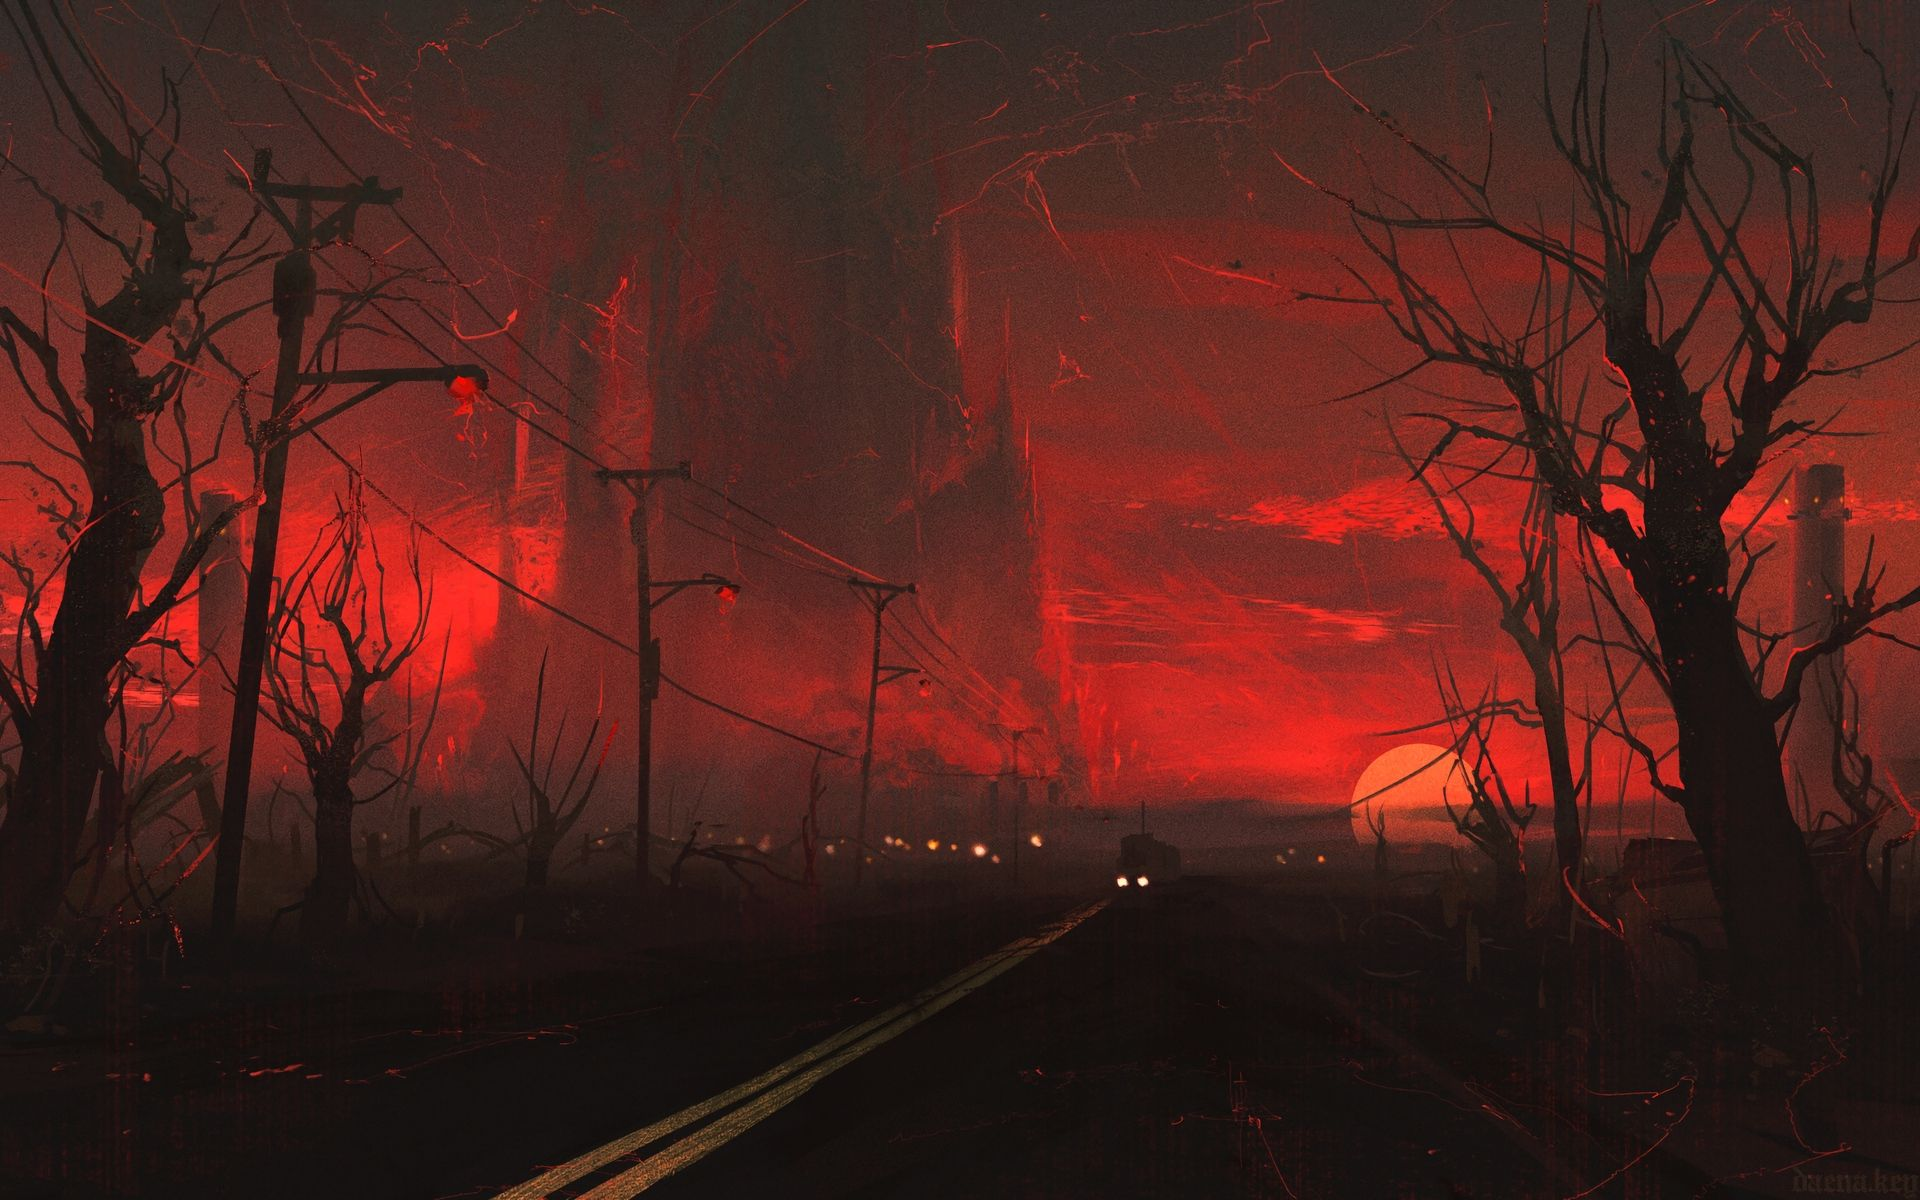 Red Darkness, Gloomy Landscapes, Red Railway wallpaper